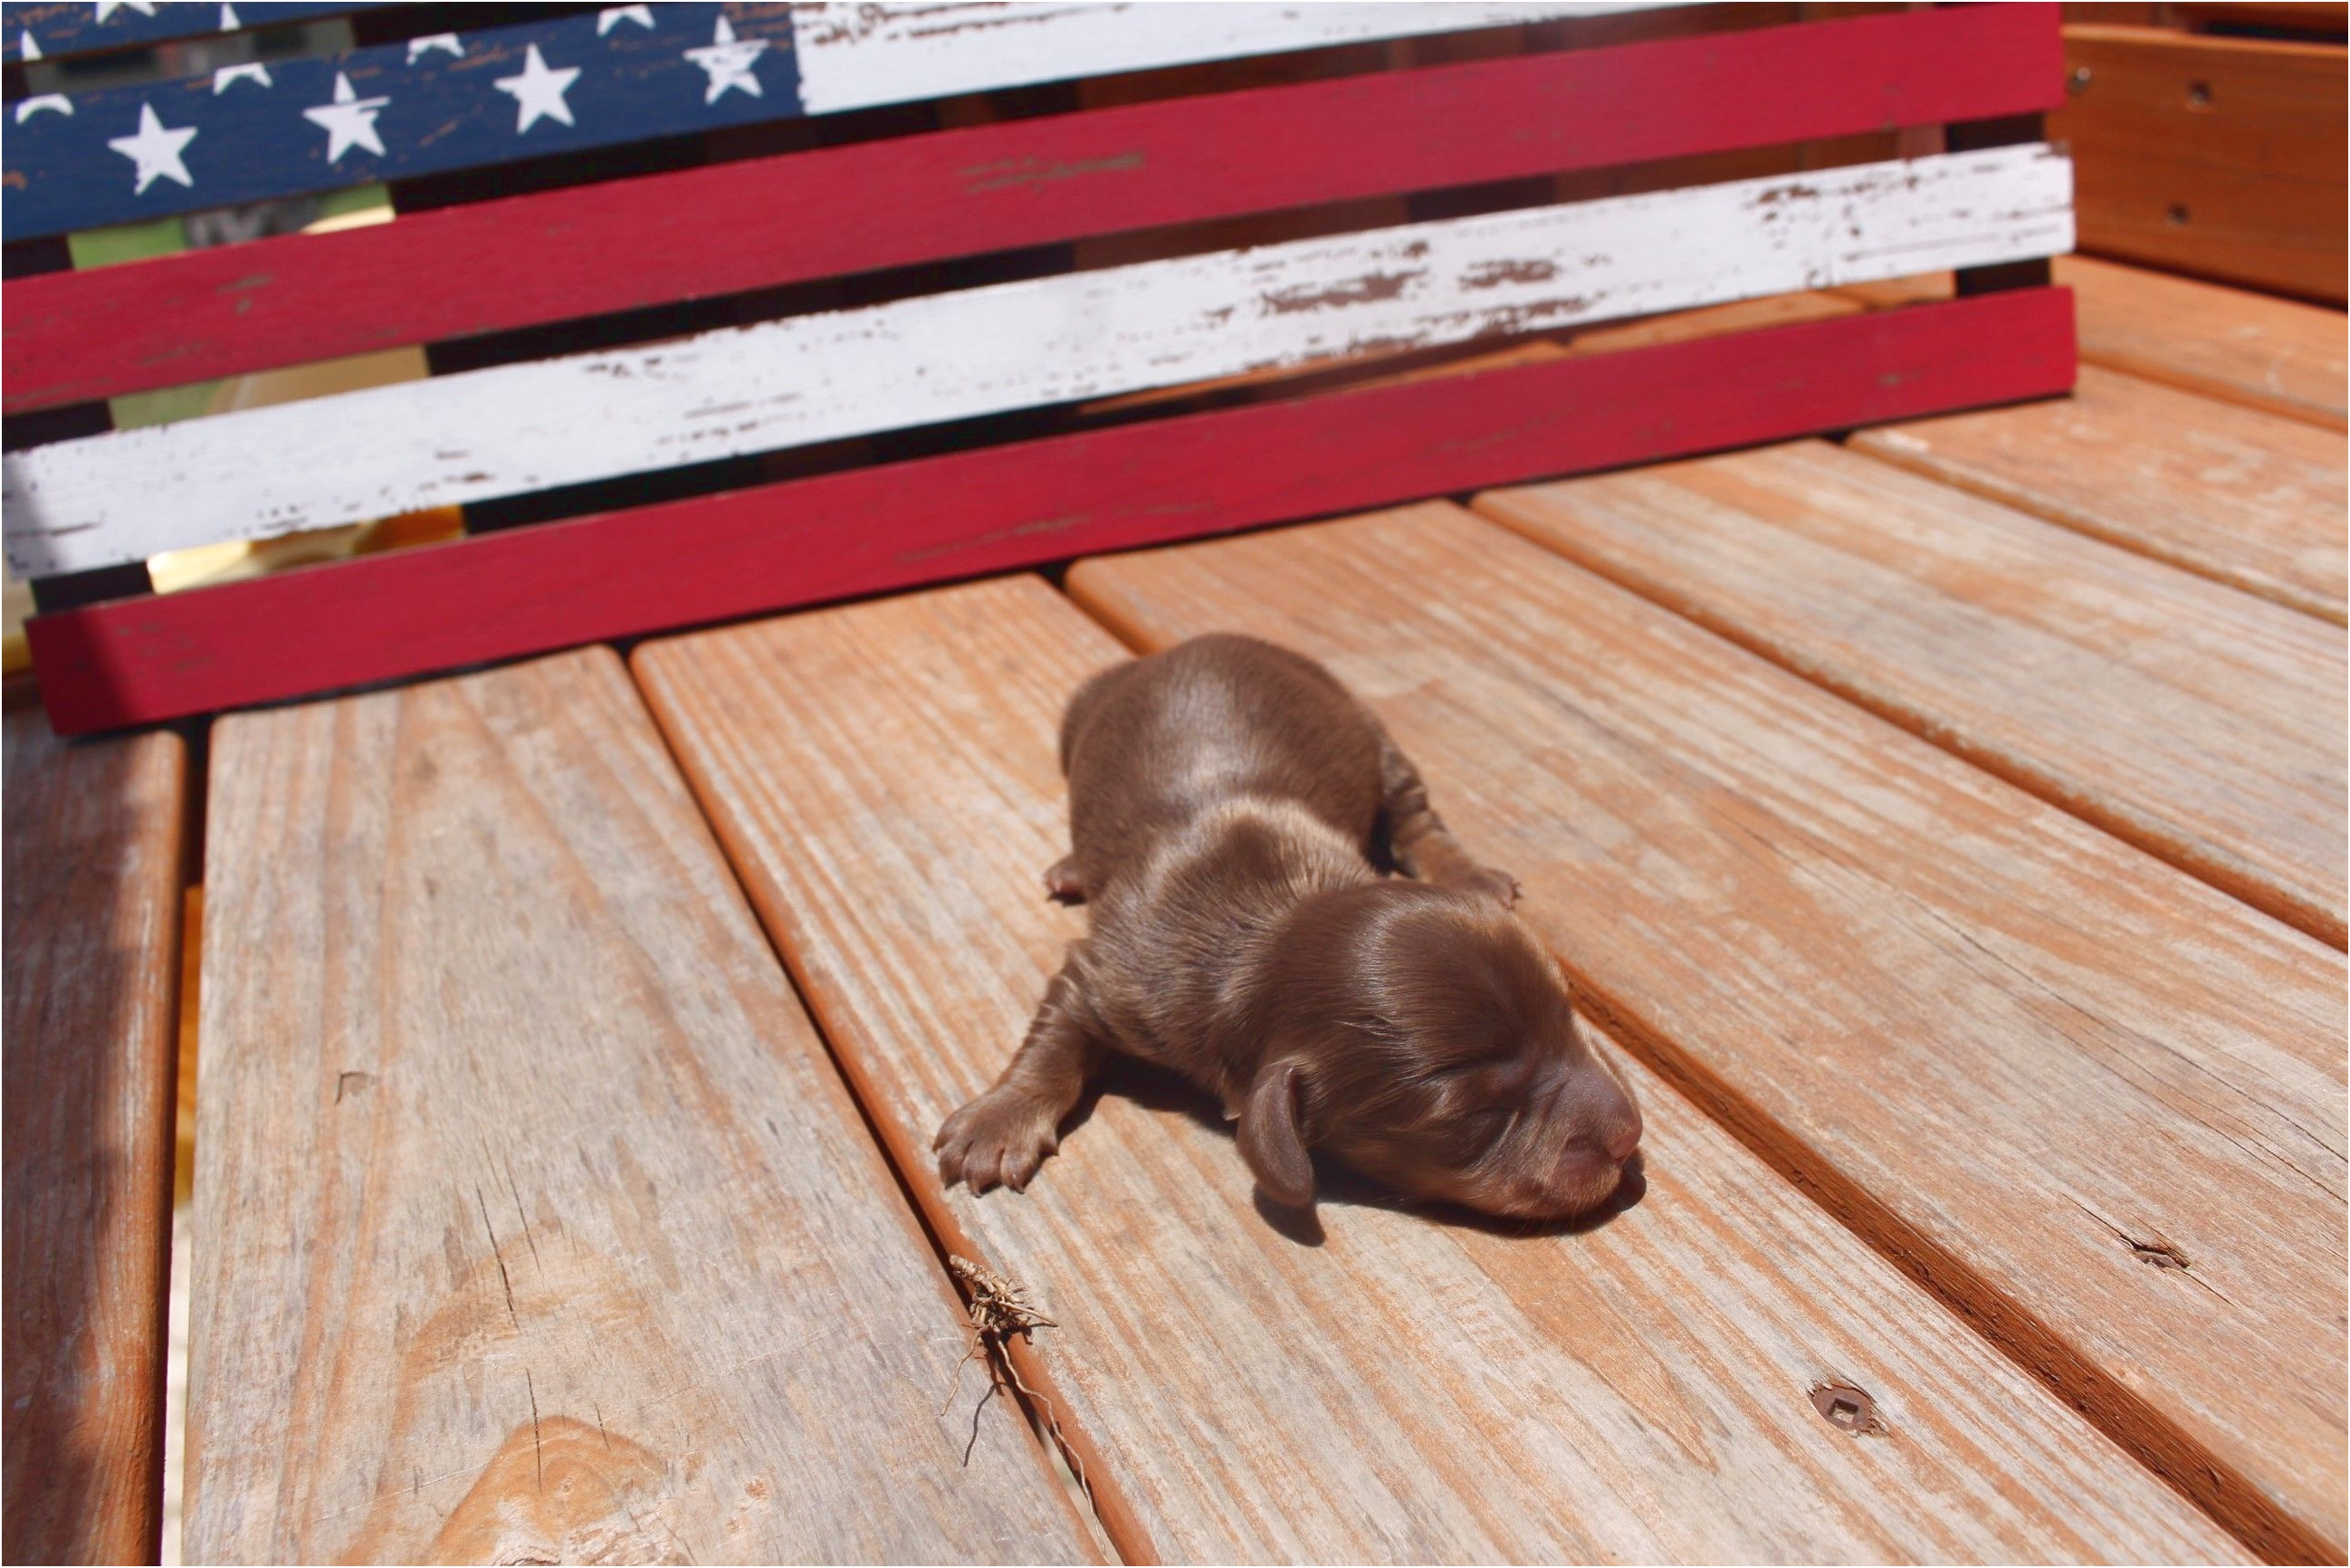 dachshund puppies for sale in san antonio texas